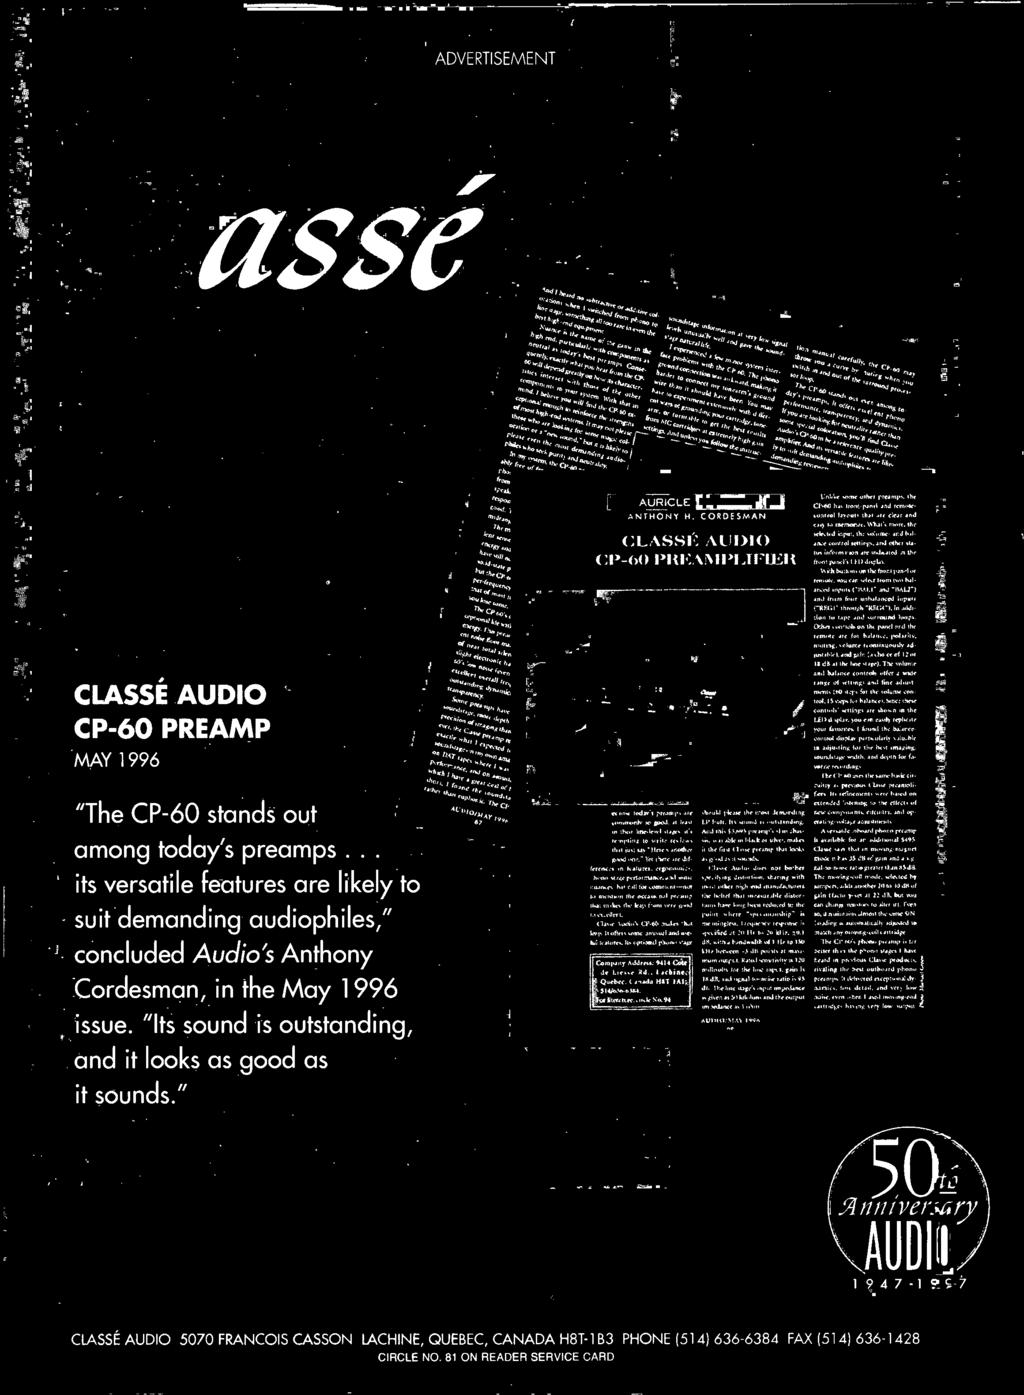 ".. its versatile features are likely to suit demanding audiophiles,"" concluded Audio's Anthony Cordesman, in the May 1996 issue. ""Its sound is outstanding, and it looks as good as it sounds."" *gag."